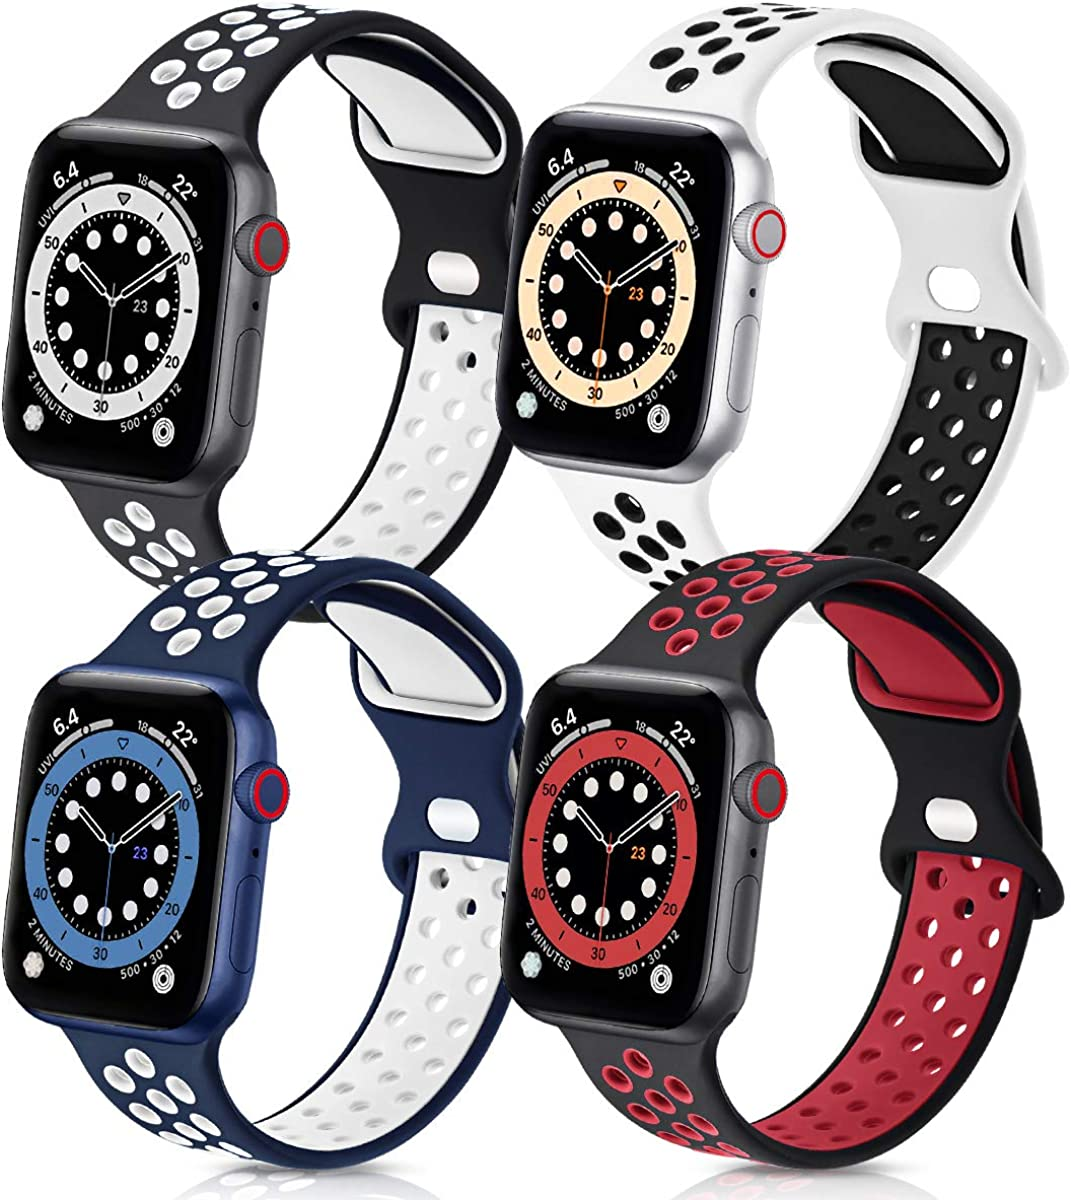 GROGON Compatible with Apple Watch Bands 44mm 42mm 40mm 38mm for Men Women, Silicone Sport Bands Waterproof Breathable Soft Replacement Wristband Strap for iWatch SE Series /6/5/4/3/2/1